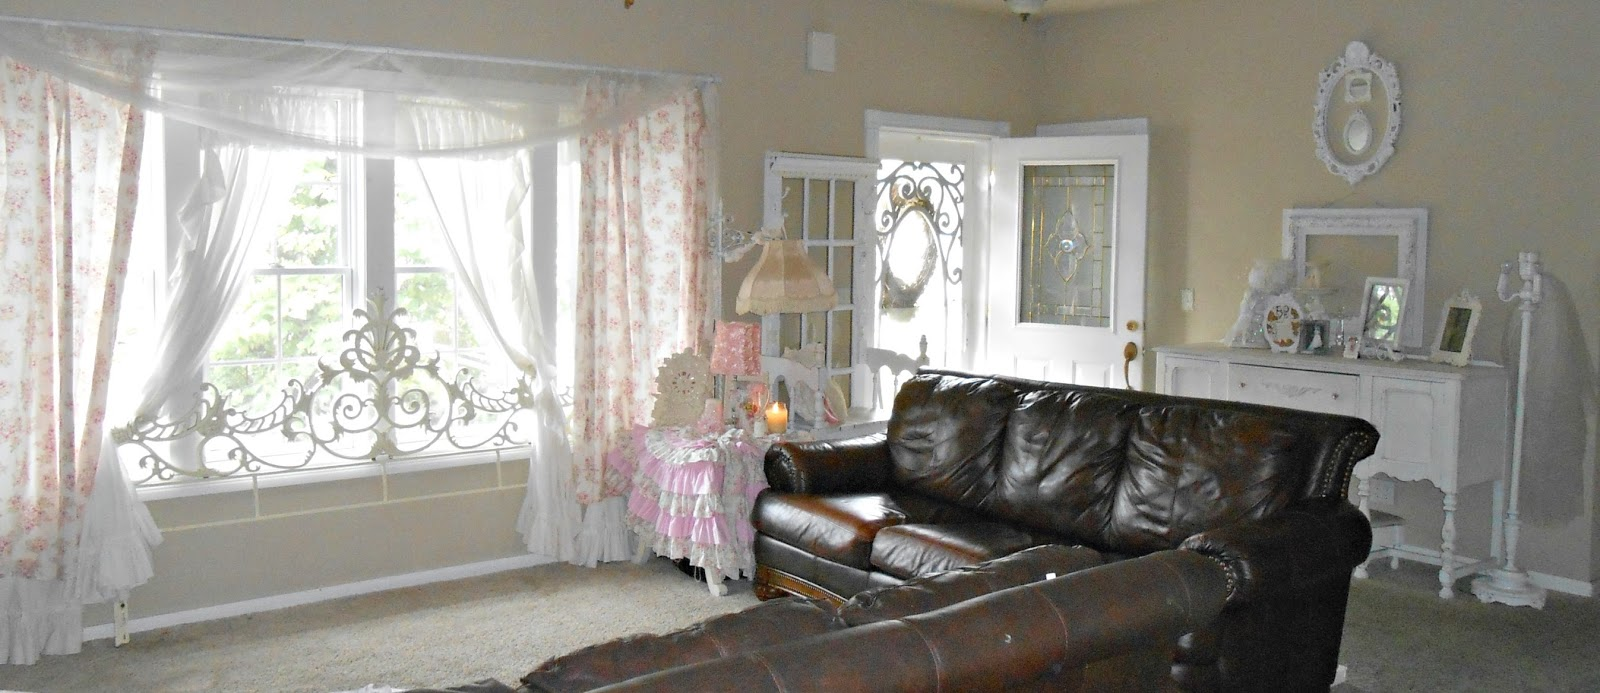 olivia 39 s romantic home shabby chic living room. Black Bedroom Furniture Sets. Home Design Ideas